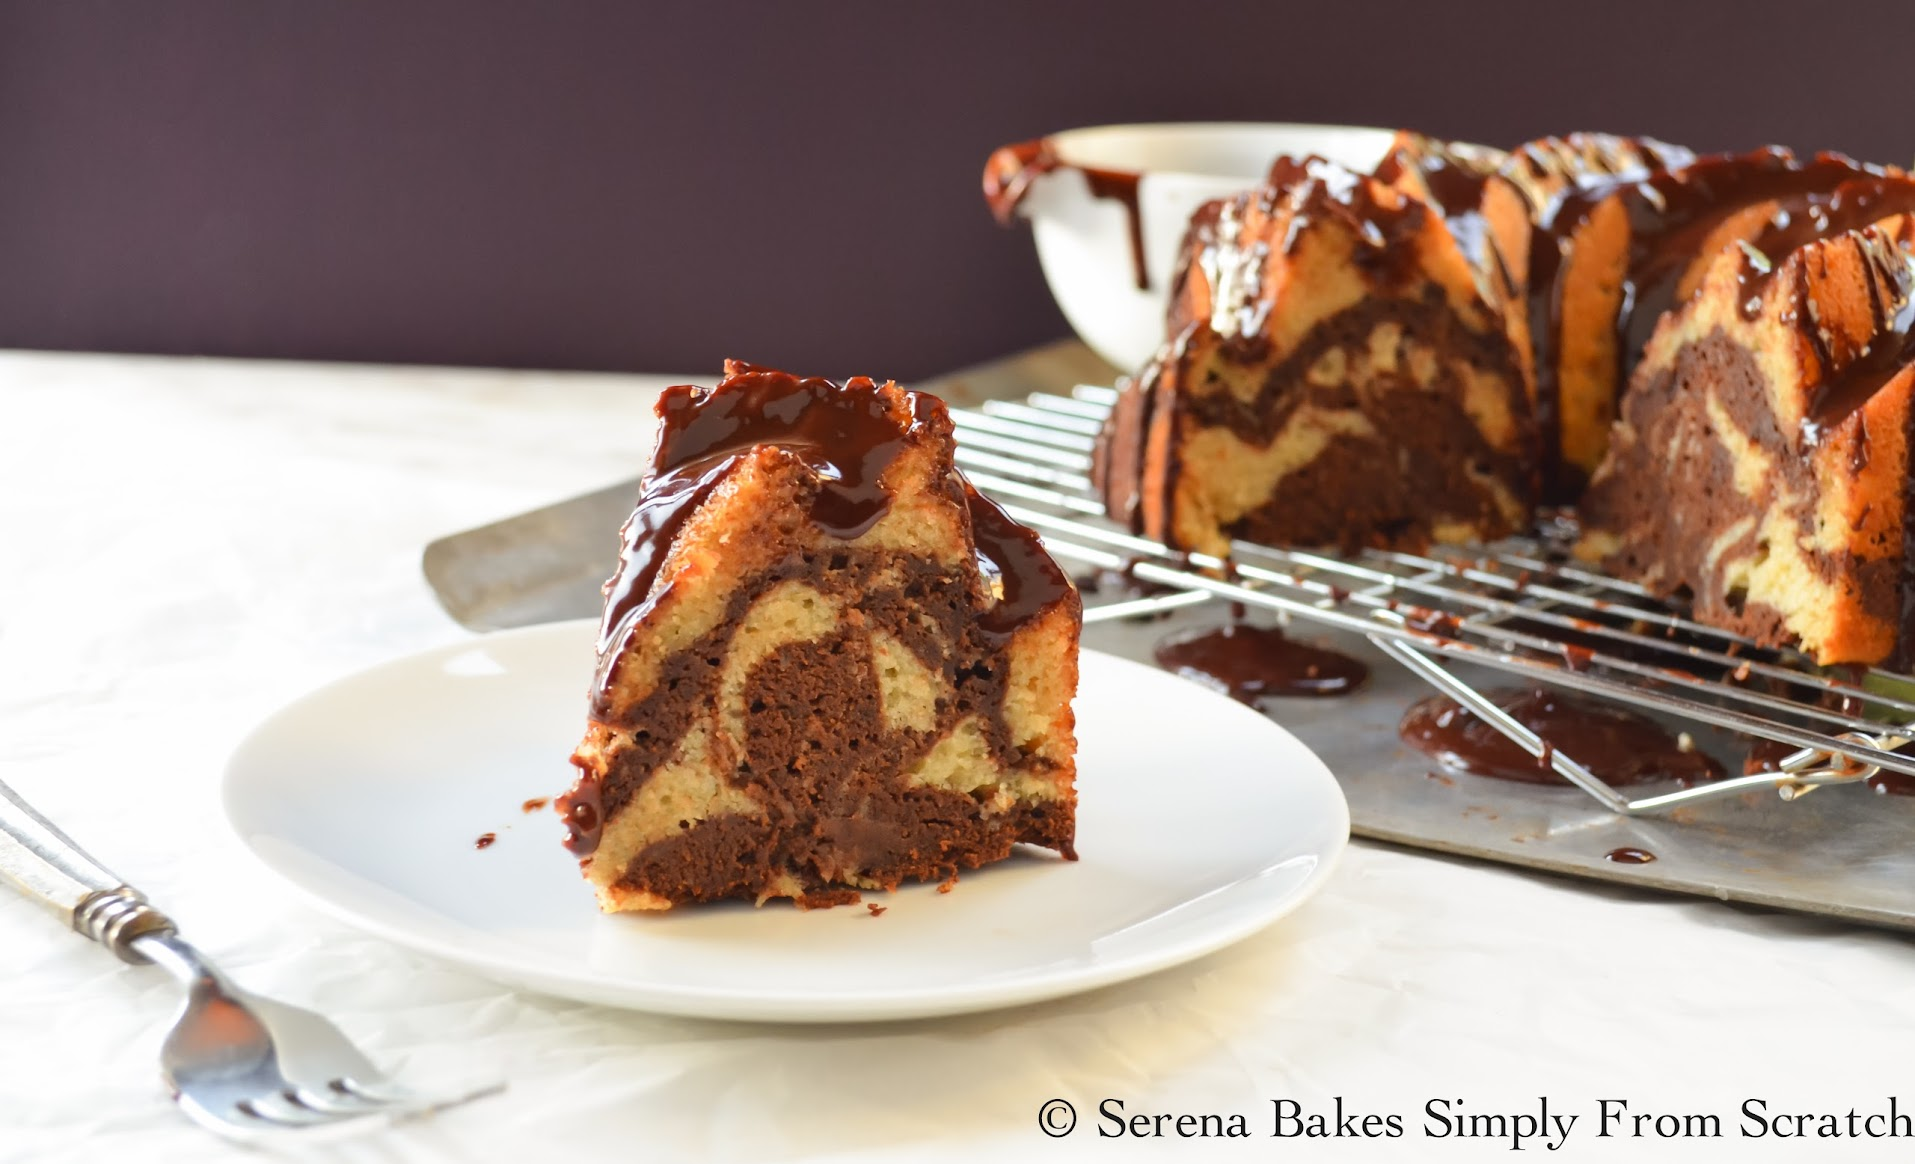 Buttermilk Marble Bundt Cake With Chocolate Cake is perfect for company.